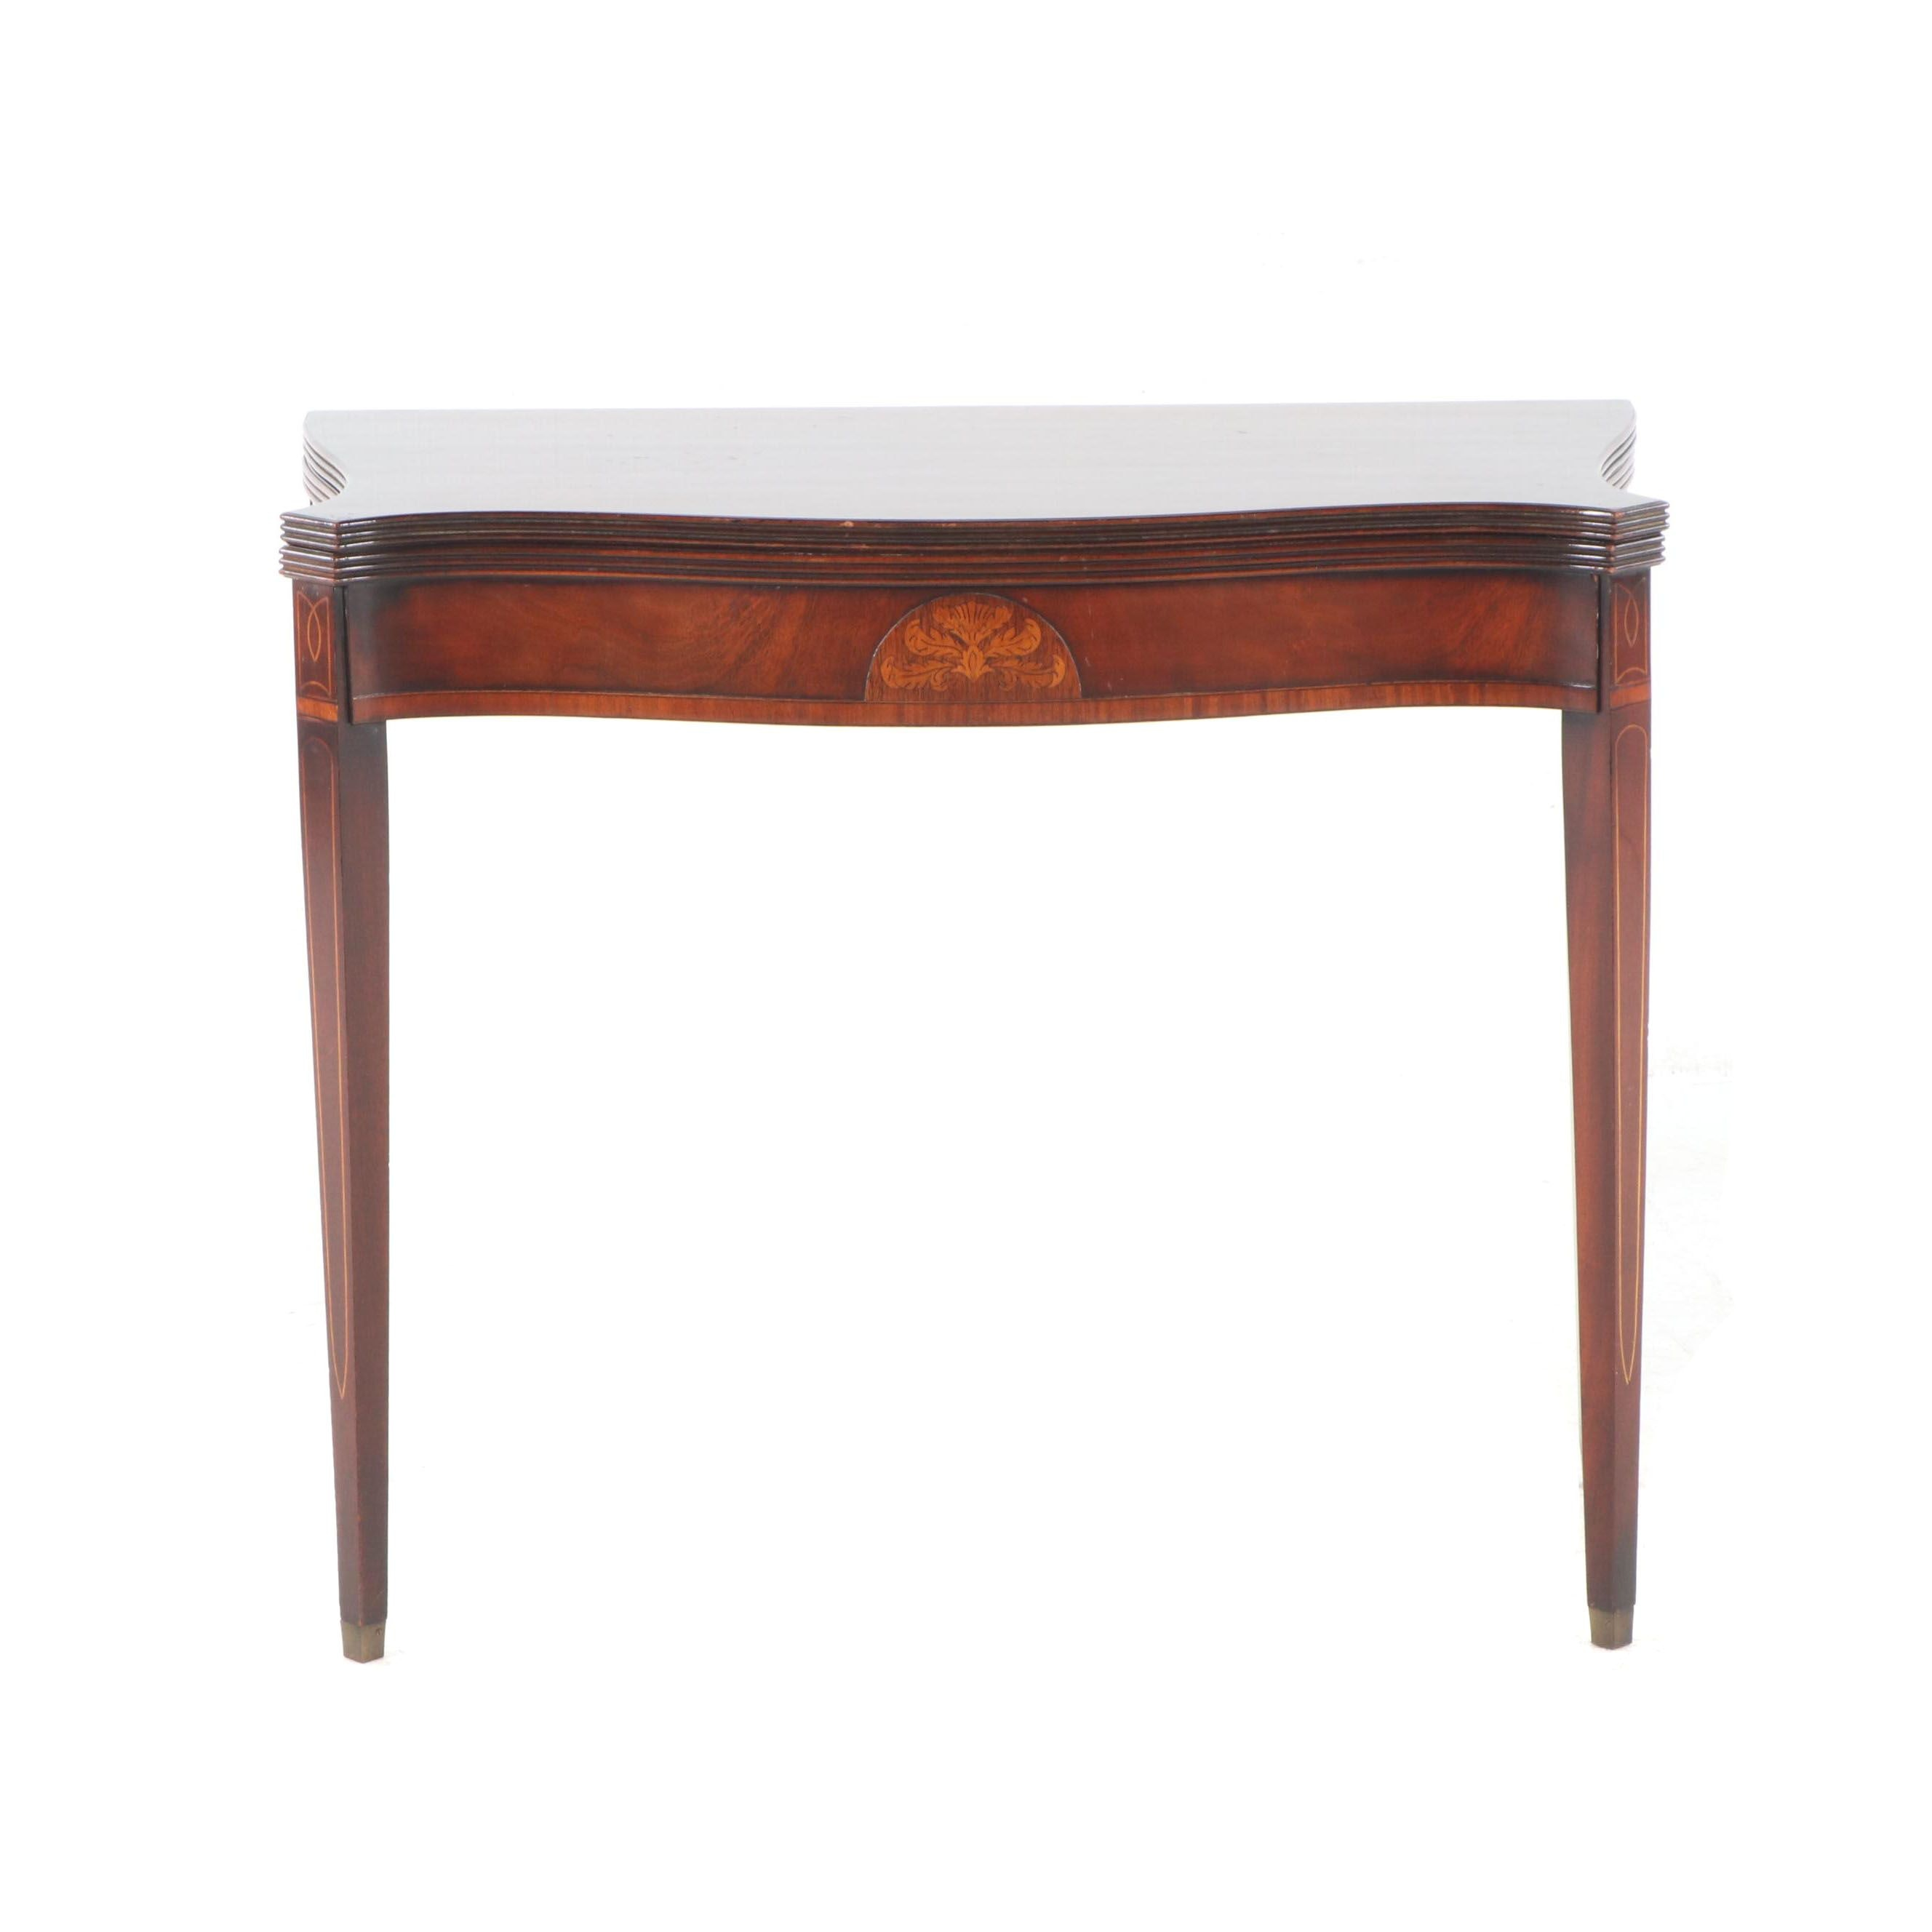 Inlaid Mahogany Hepplewhite Style Game Table, Mid 20th Century